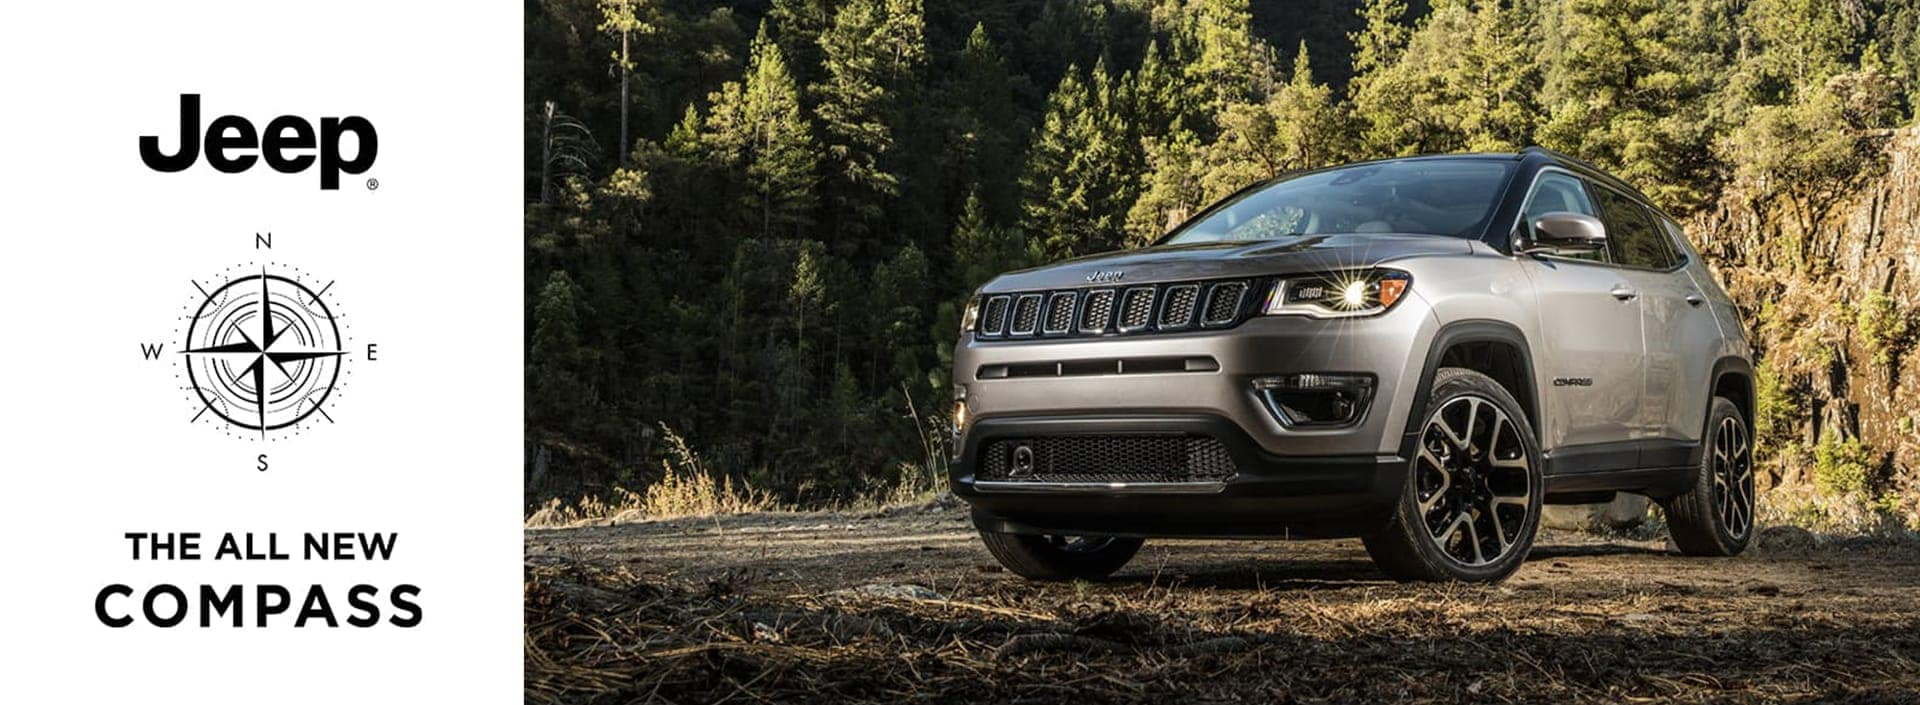 All Star Dodge Chrysler Jeep Ram | New and Used Car Dealer ...